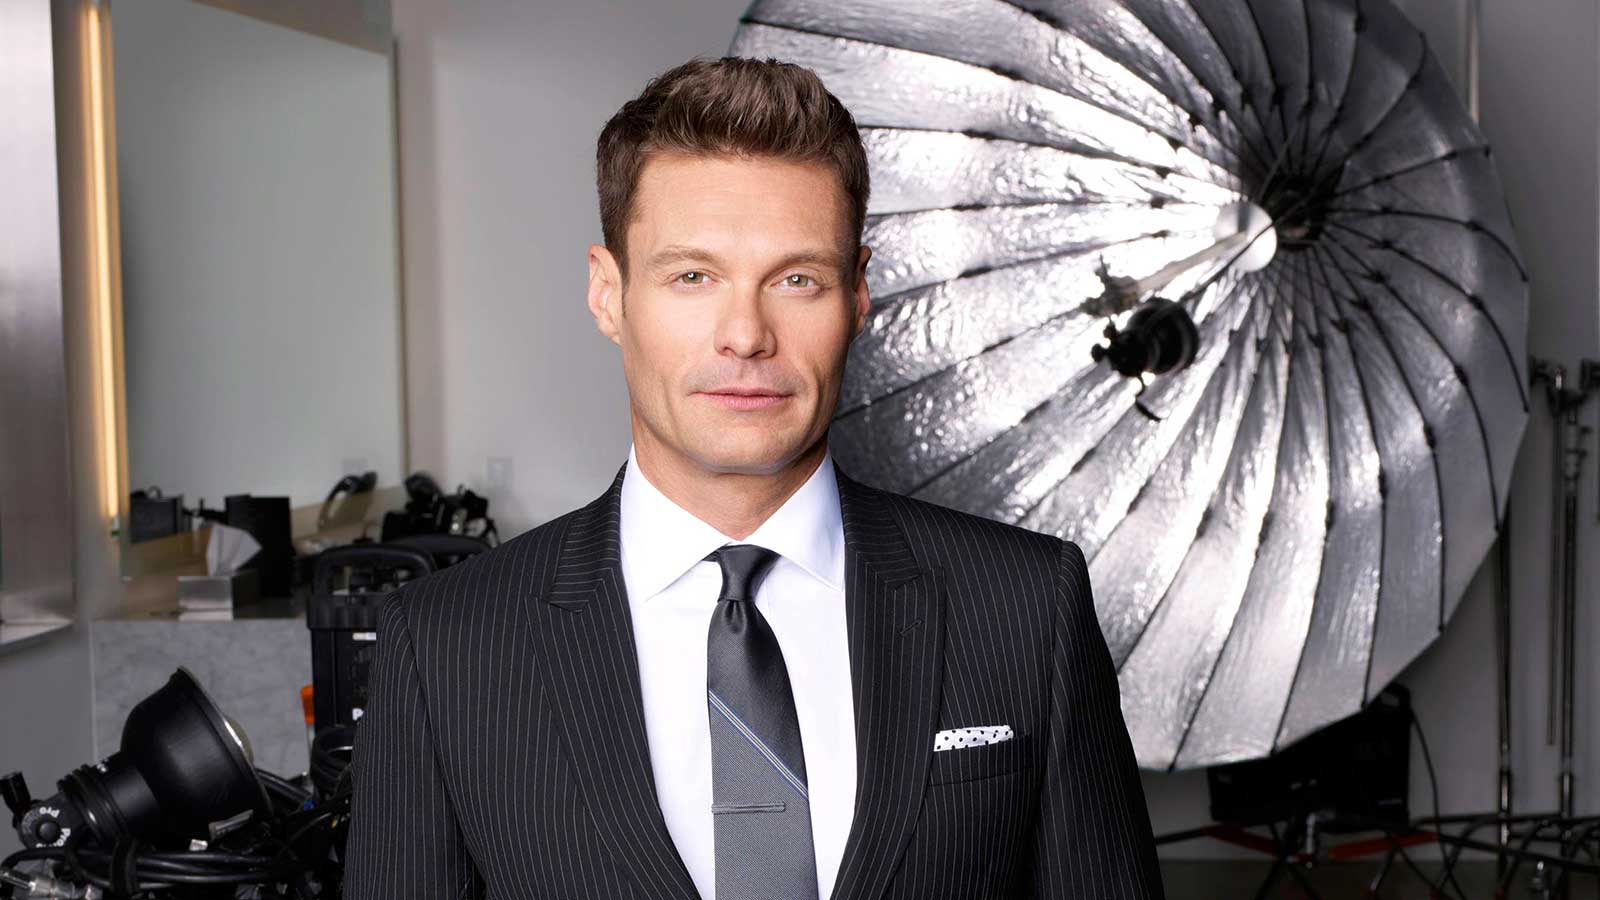 ryan seacrest celebrity computer wallpaper 63253